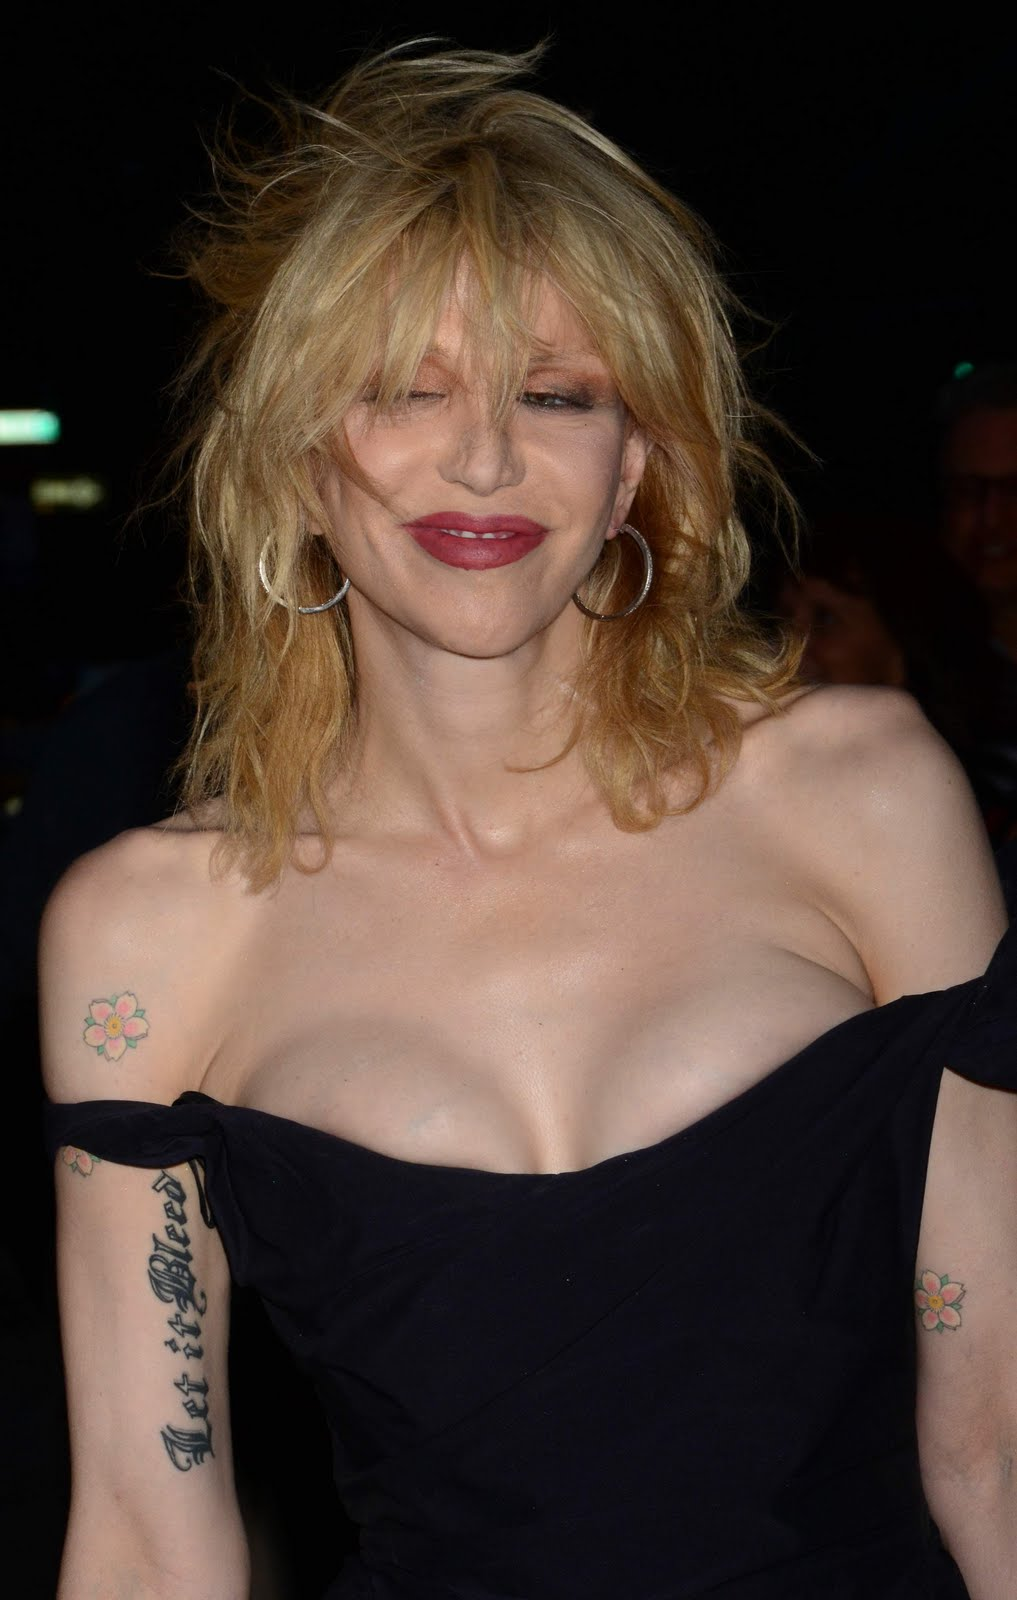 Courtney Love Drunk